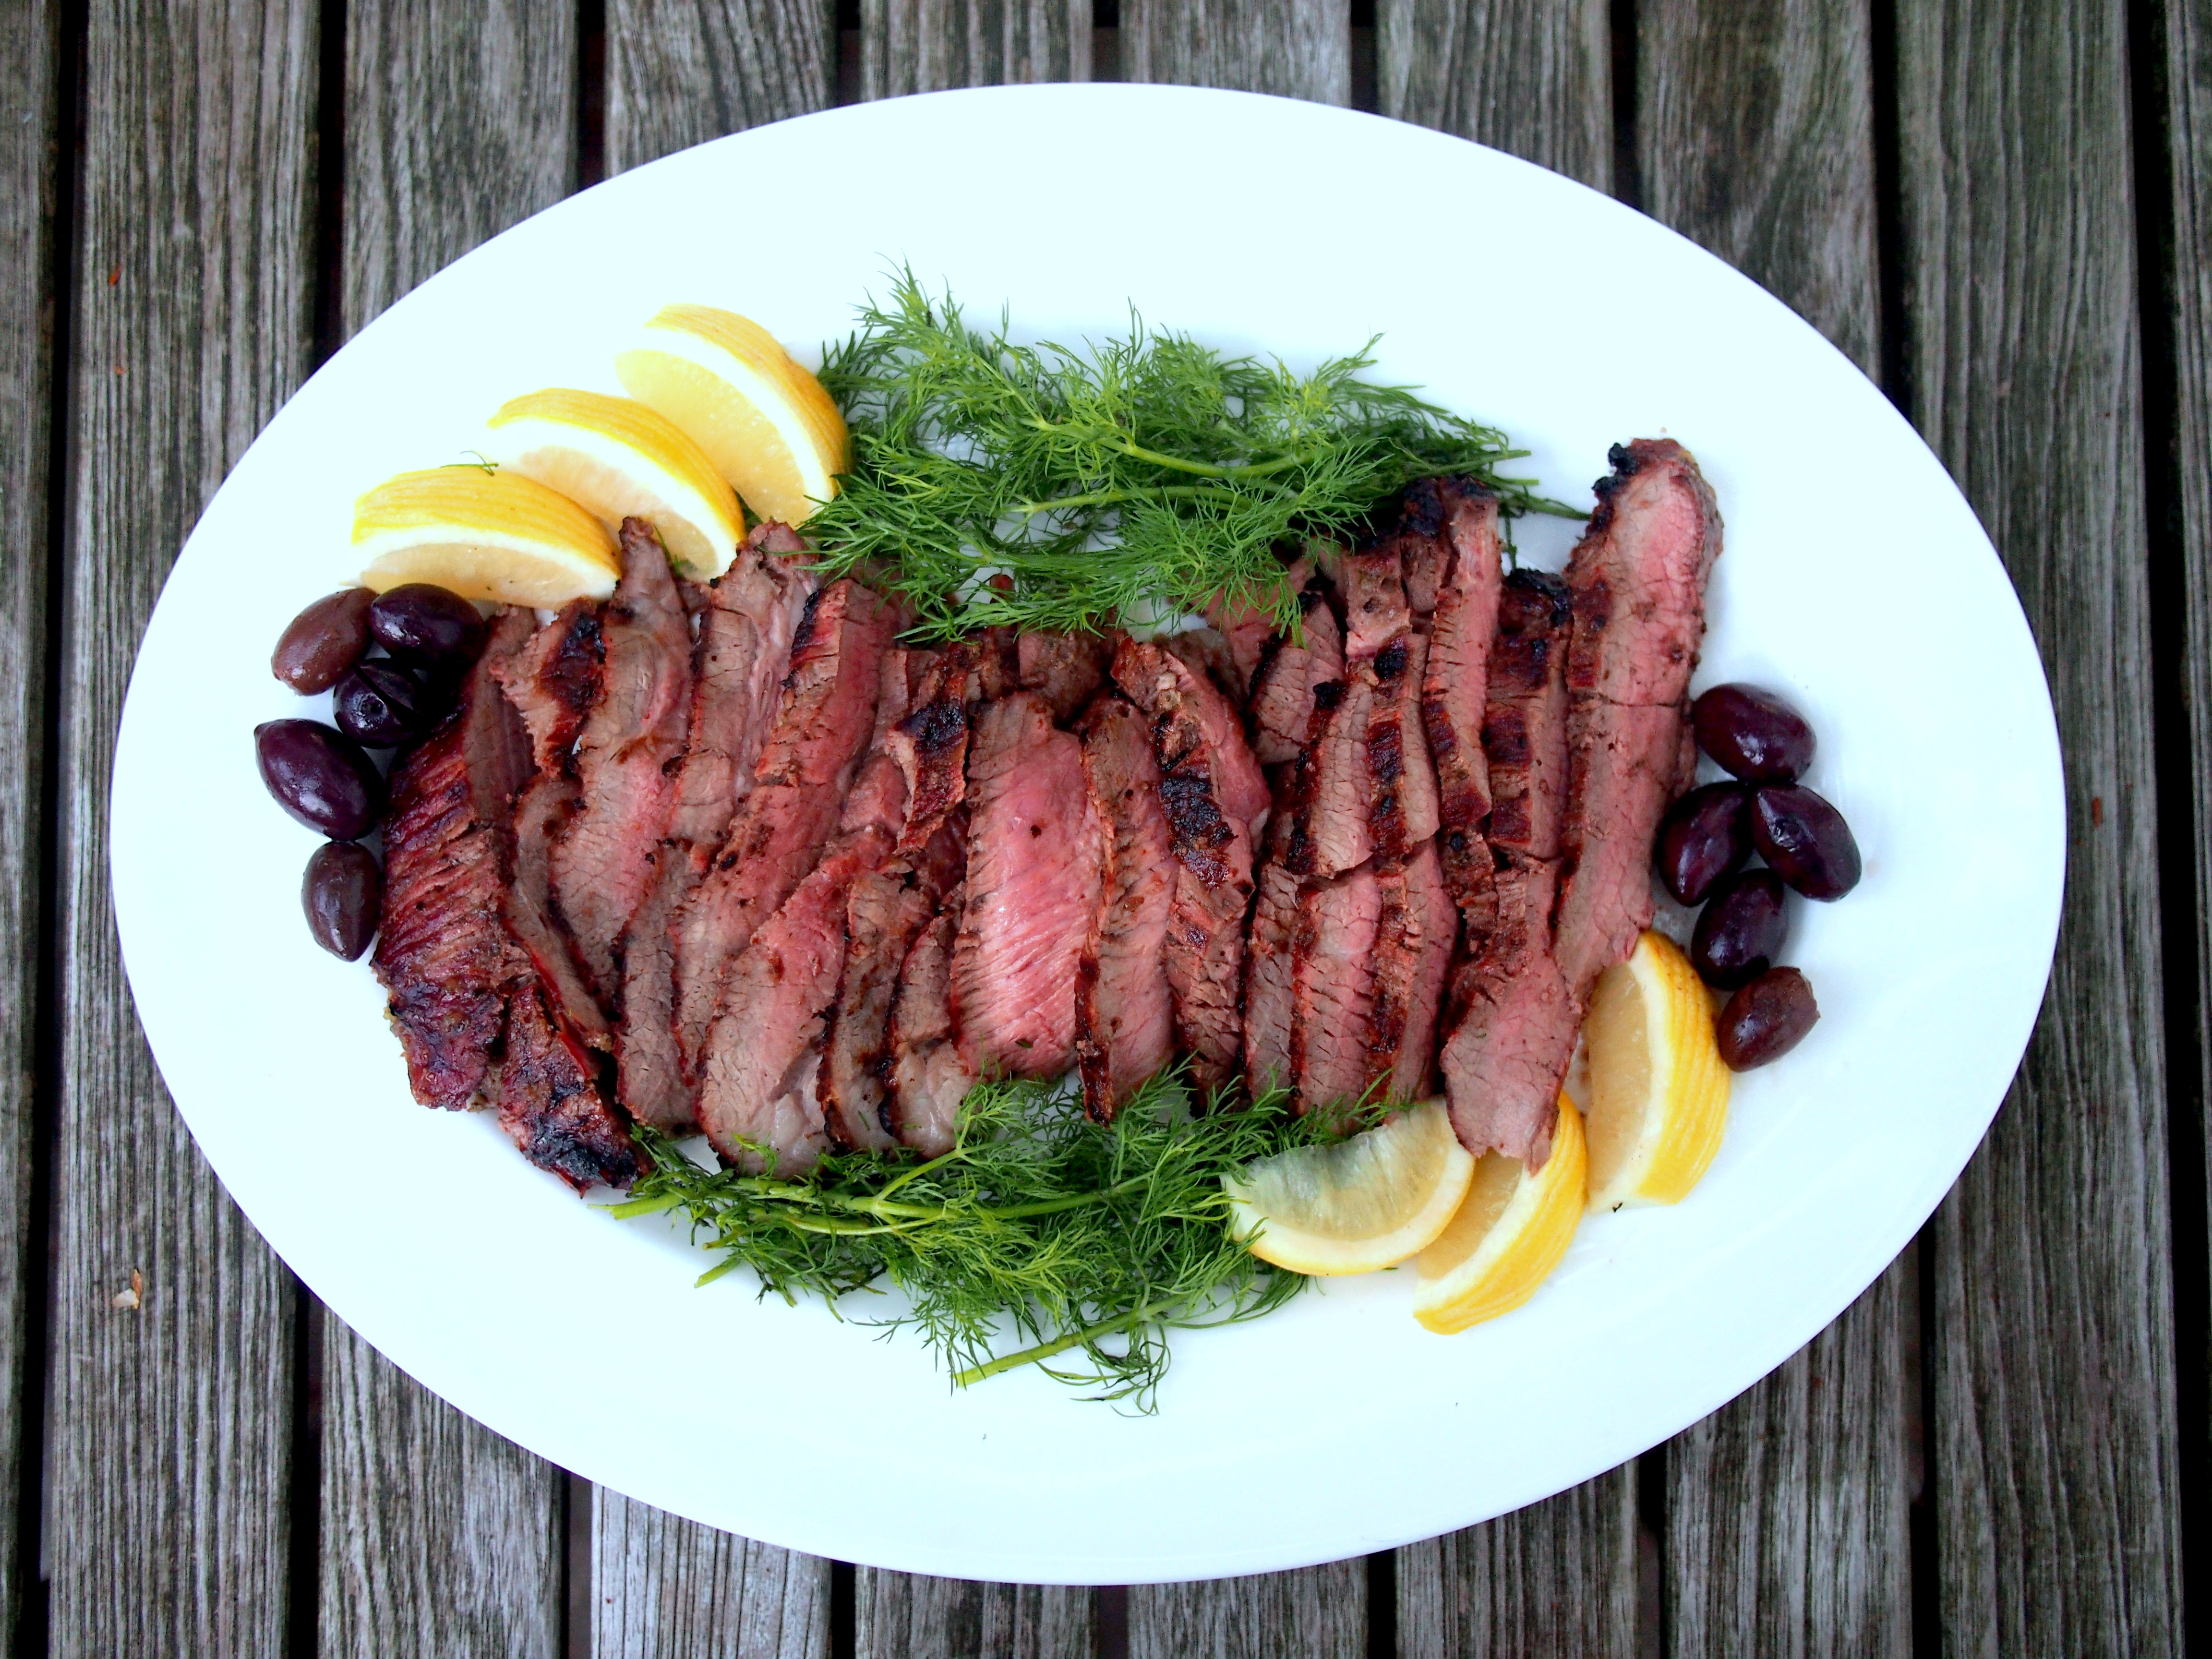 lamb-grilled-butterflied-leg-of-lamb-with-dill-lemon-and-oregano-1.jpg